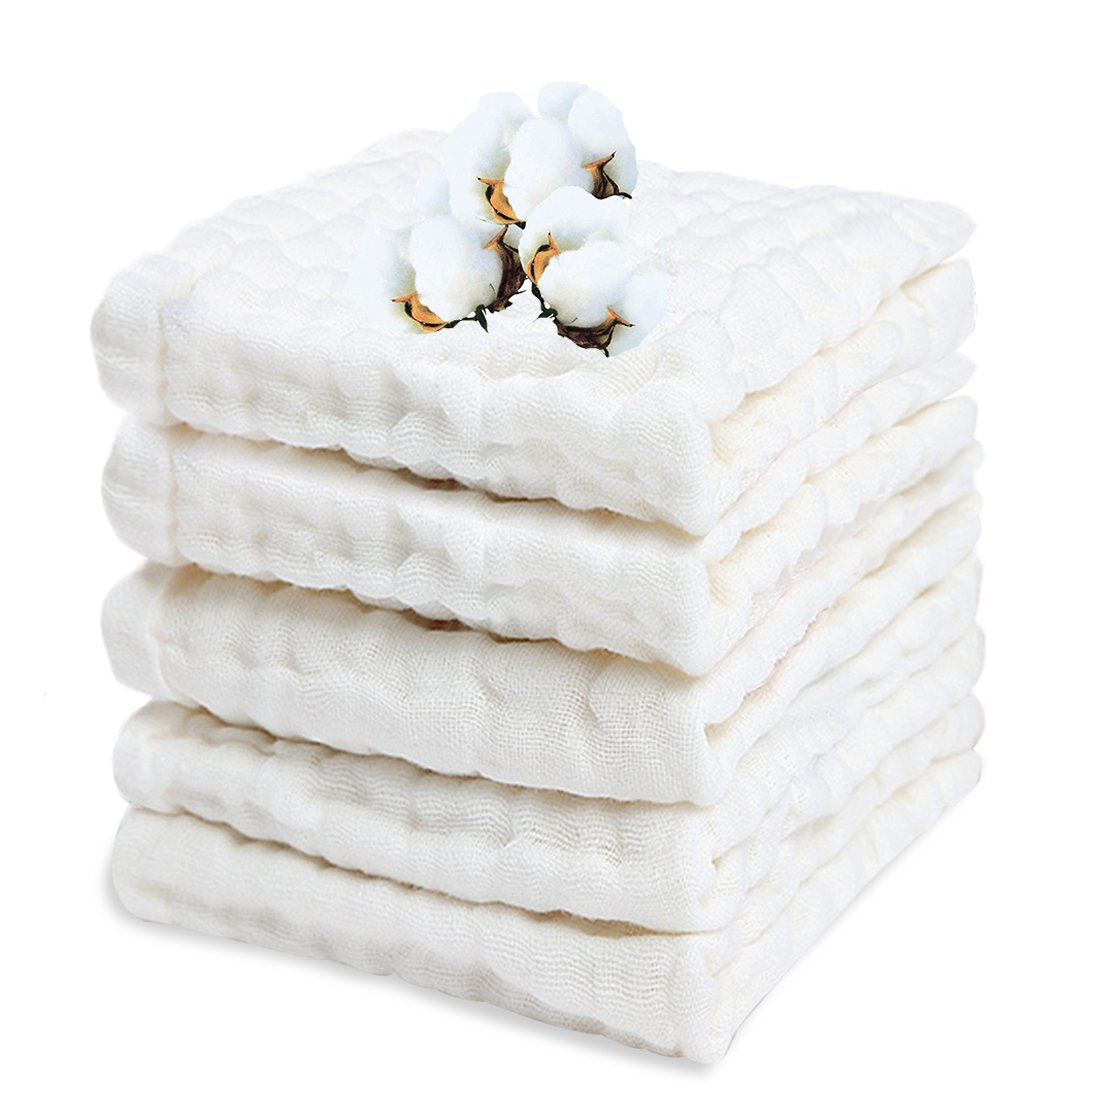 cheap paper towels Find wholesale paper towel online from china paper towel wholesalers and dropshippers dhgate helps you get high quality discount paper towel at bulk prices dhgatecom provides 1293 paper towel items from china top selected toilet paper holders , bathroom hardware , bath , home & garden suppliers at wholesale prices with worldwide delivery.